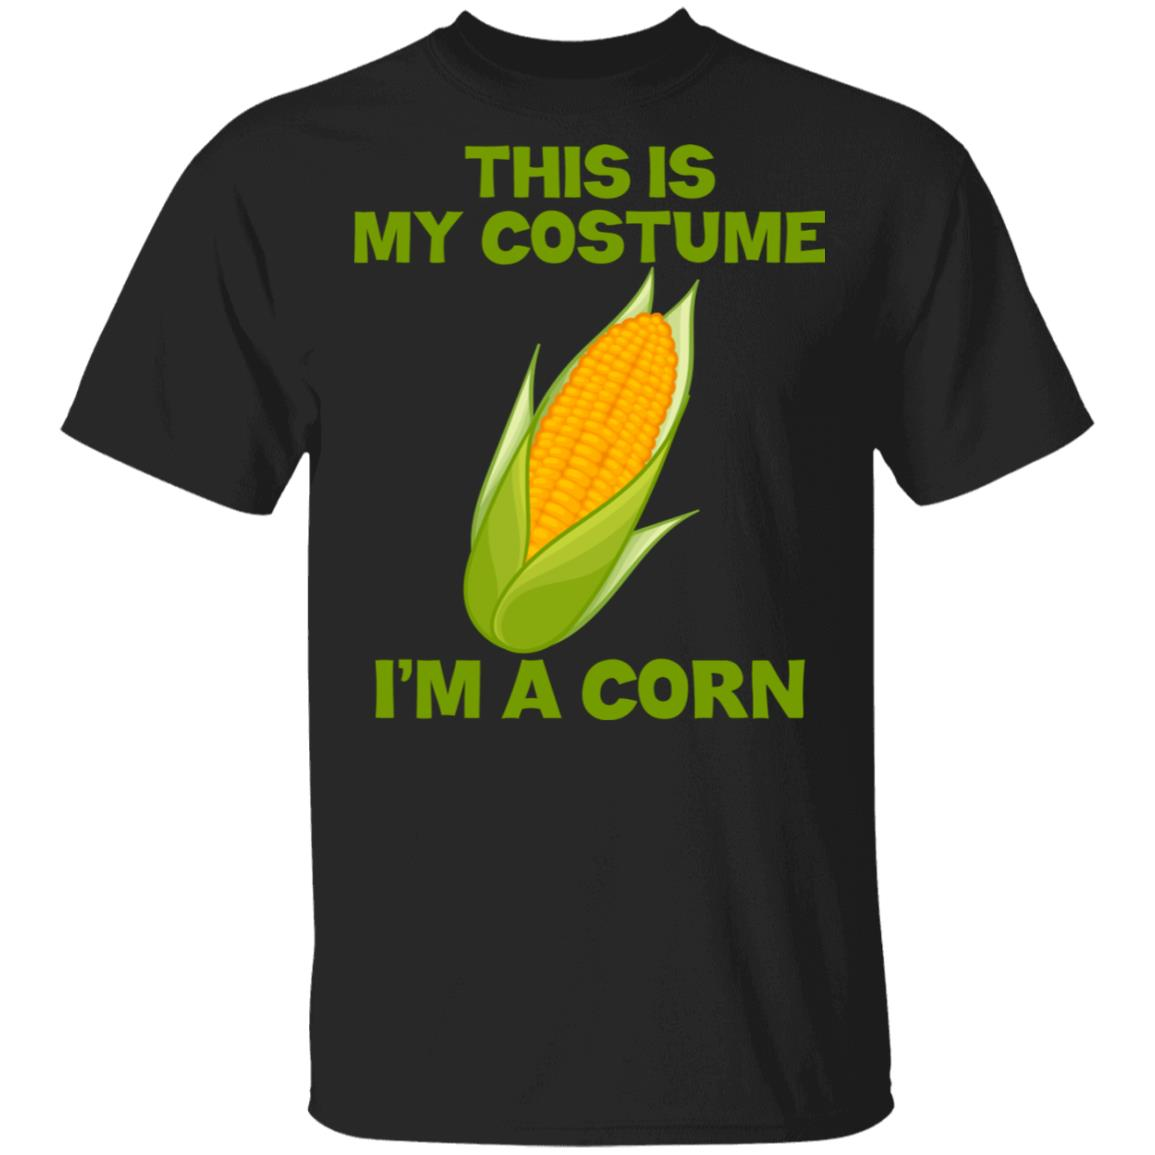 I'm A Corn This Is My Costume Unisex Short Sleeve